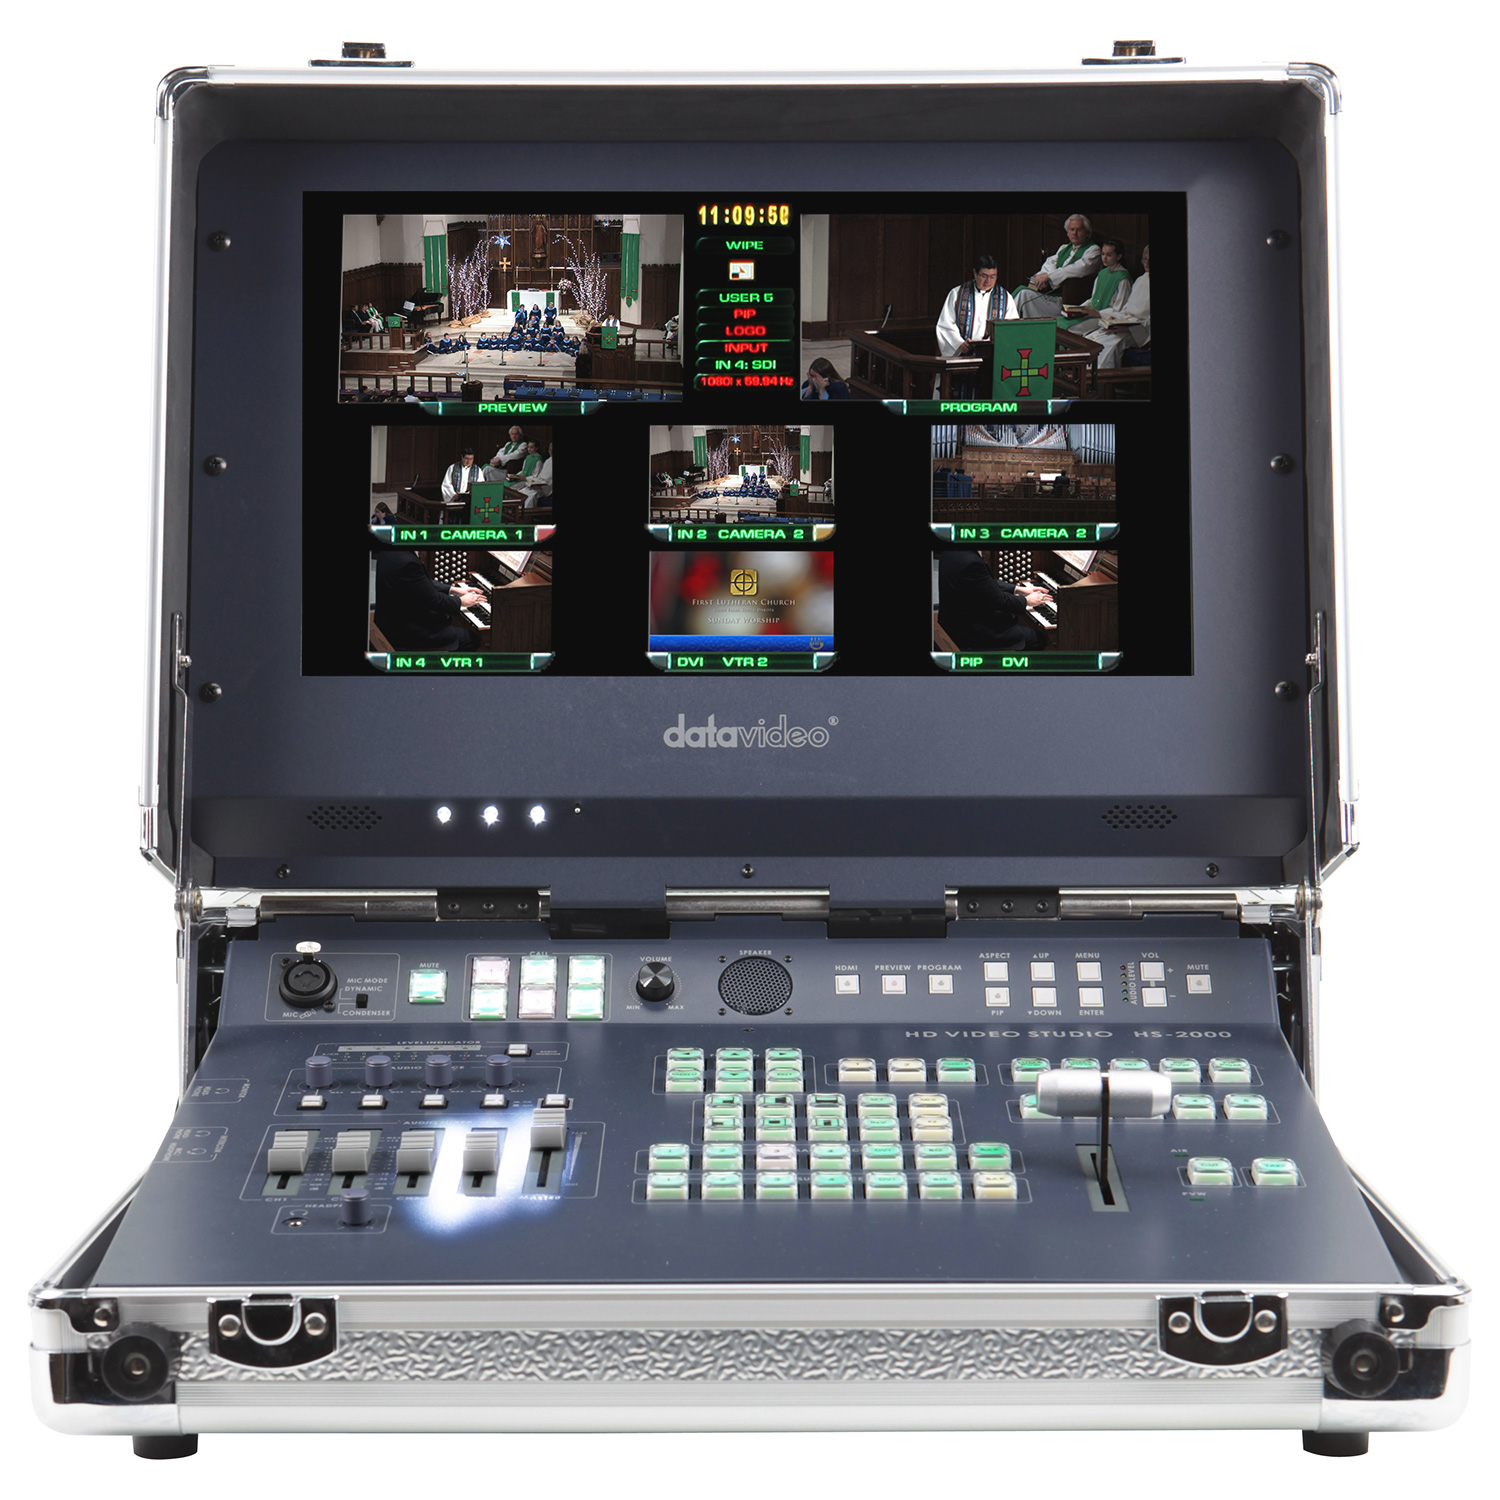 Datavideo hs 2000 five input hd hand carried mobile studio for Mobile studio